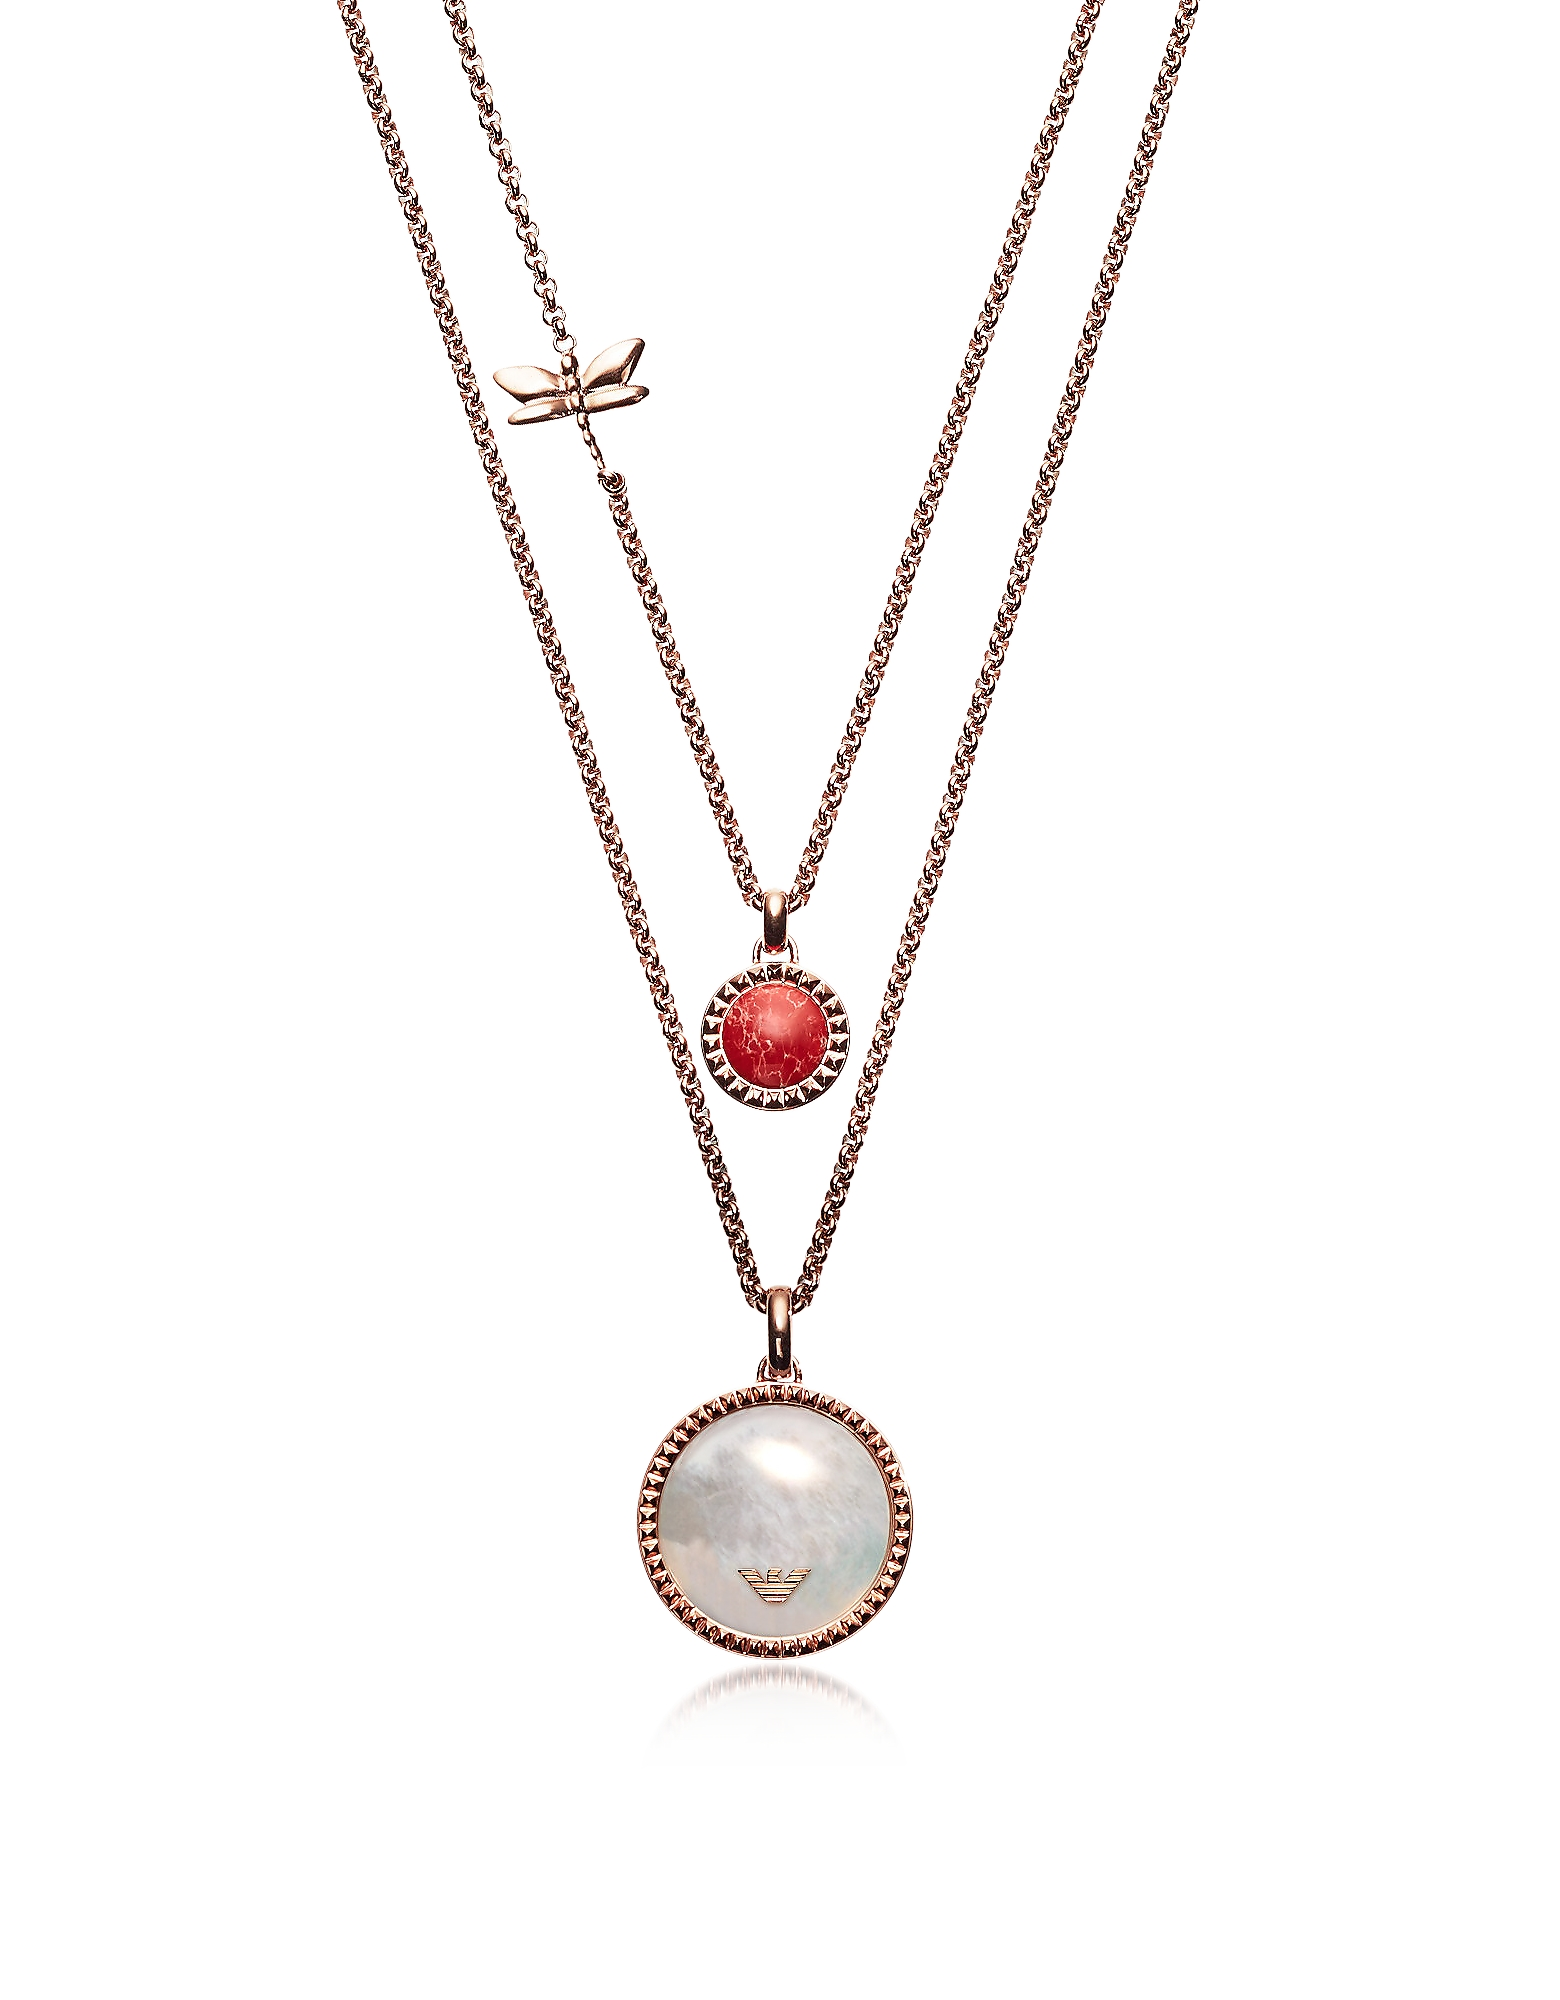 Emporio Armani  Necklaces Multi-strand Necklace with Enamel Pendants and Dragonfly